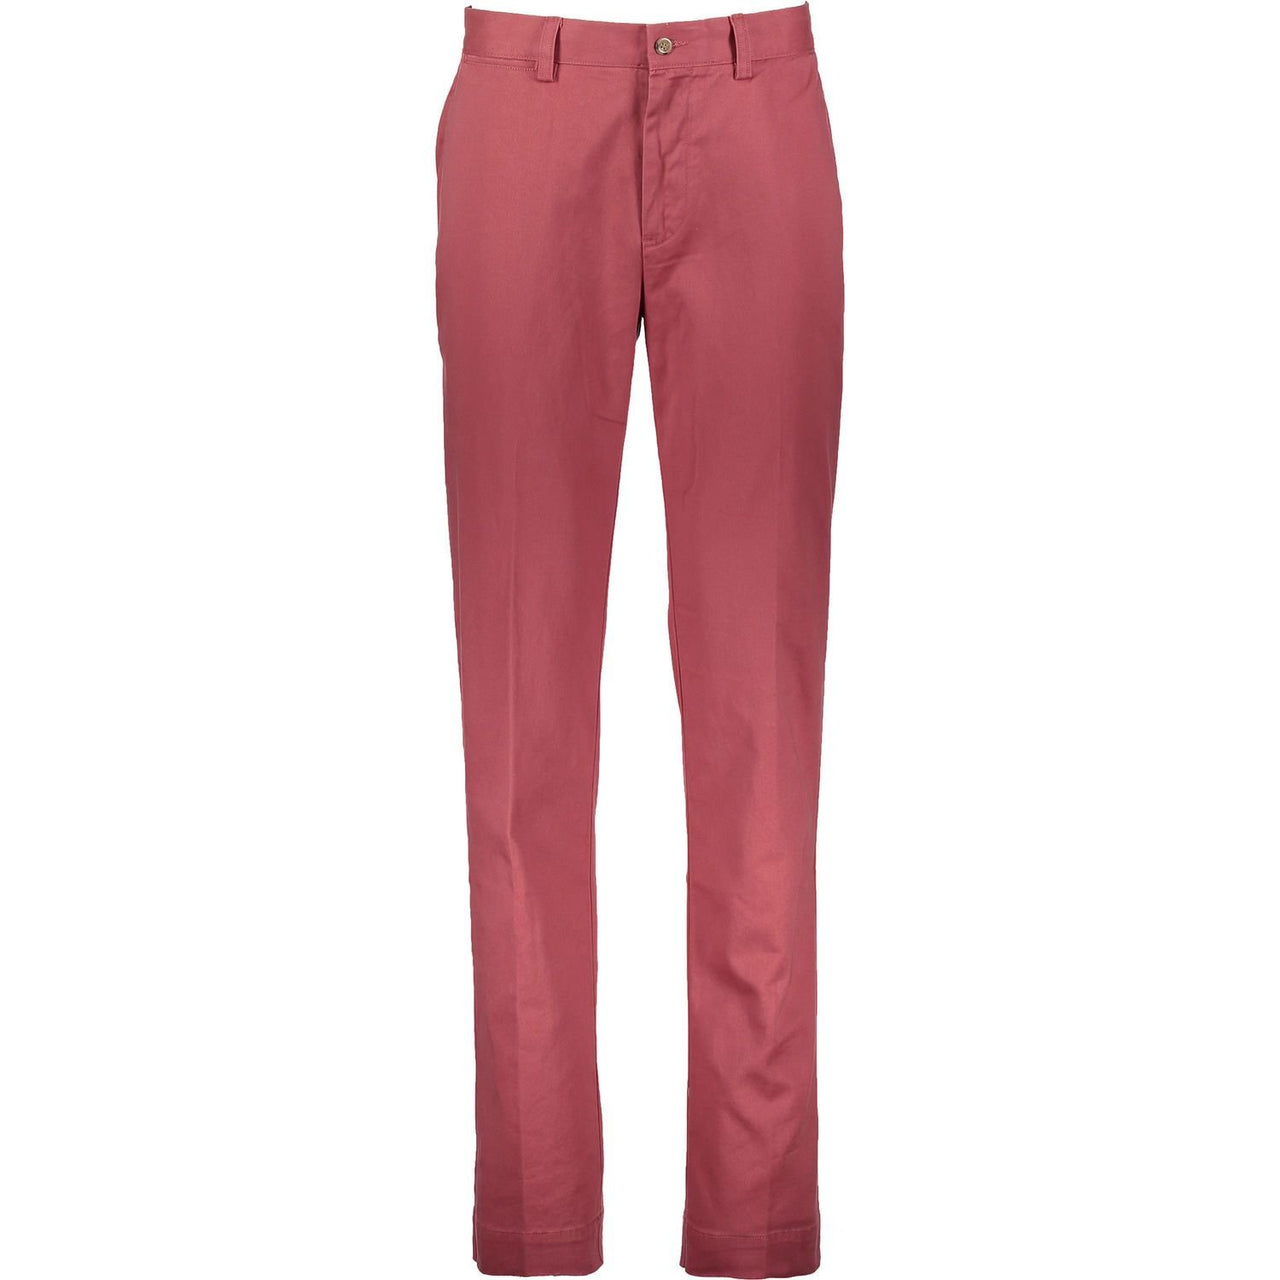 Coral Slim Fit Chino Trousers